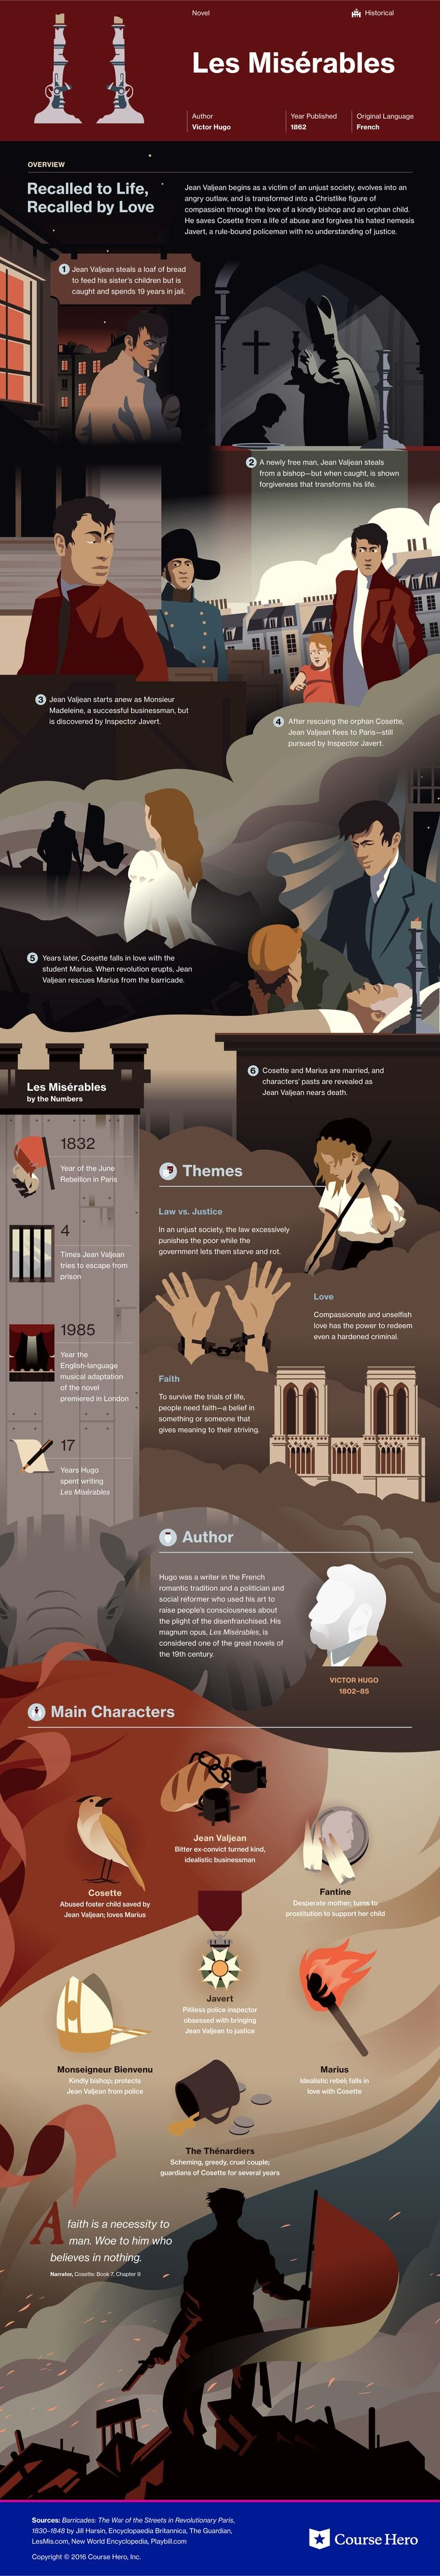 best ideas about summary of les miserables les this coursehero infographic on les misatildecopyrables is both visually stunning and informative